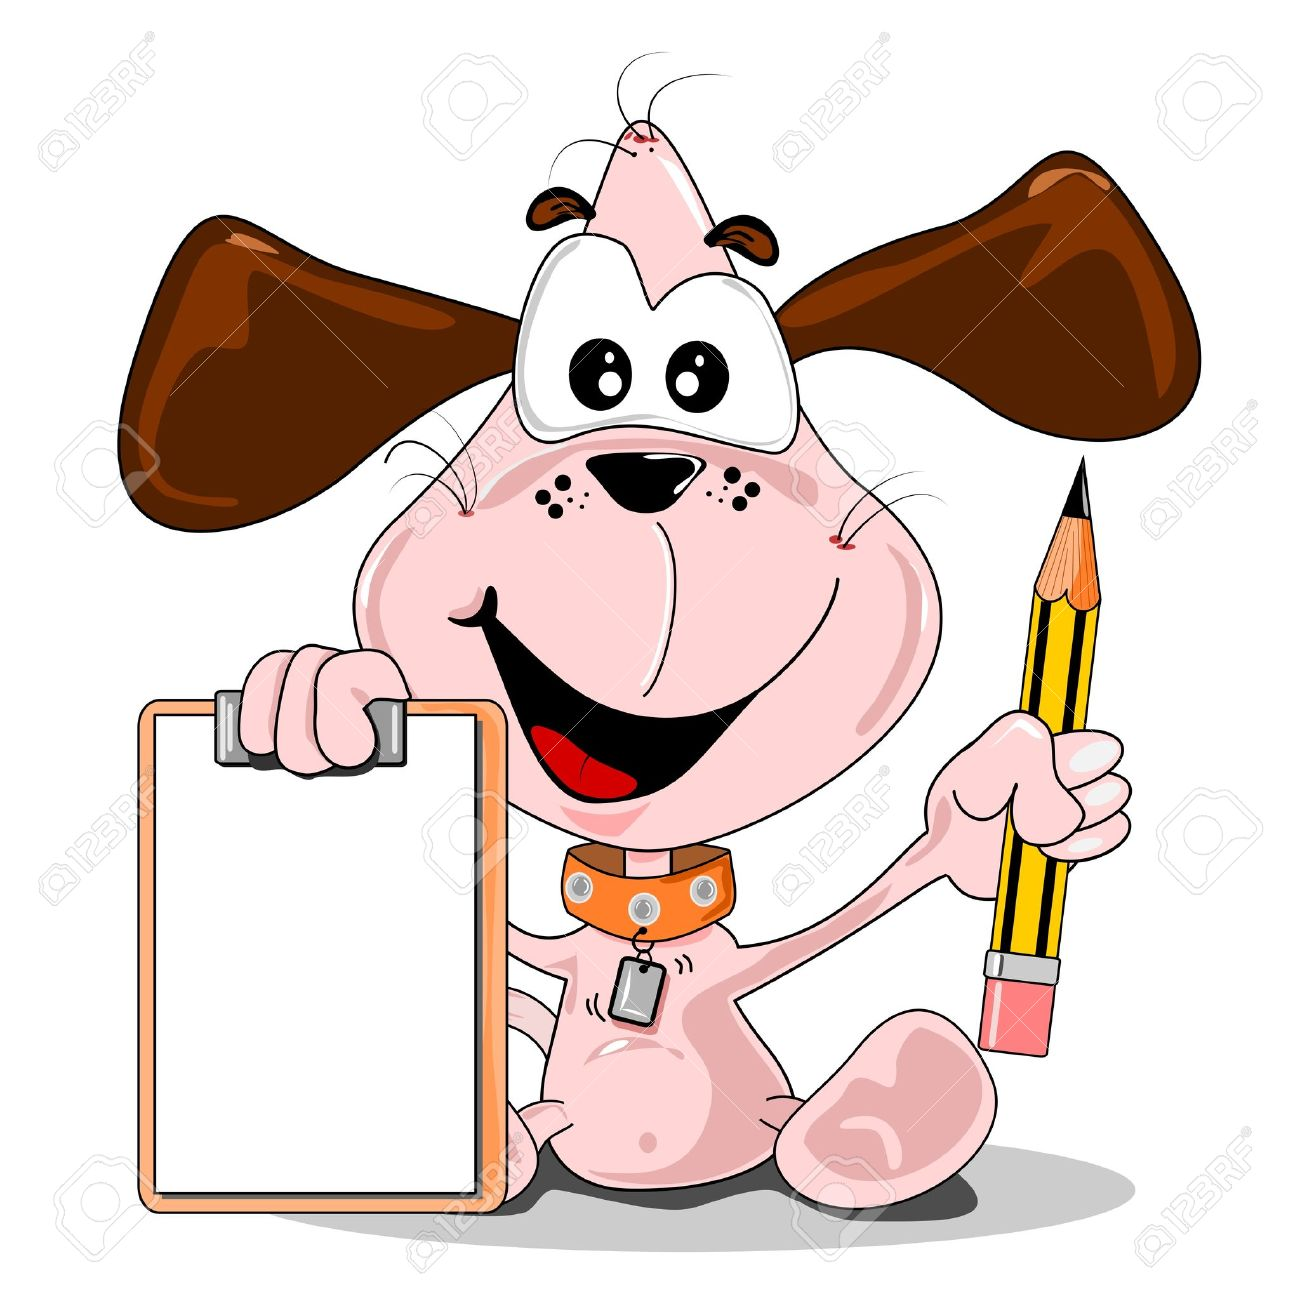 A Cartoon Dog Holding A Pencil & Blank Clip Board With Copy Space.